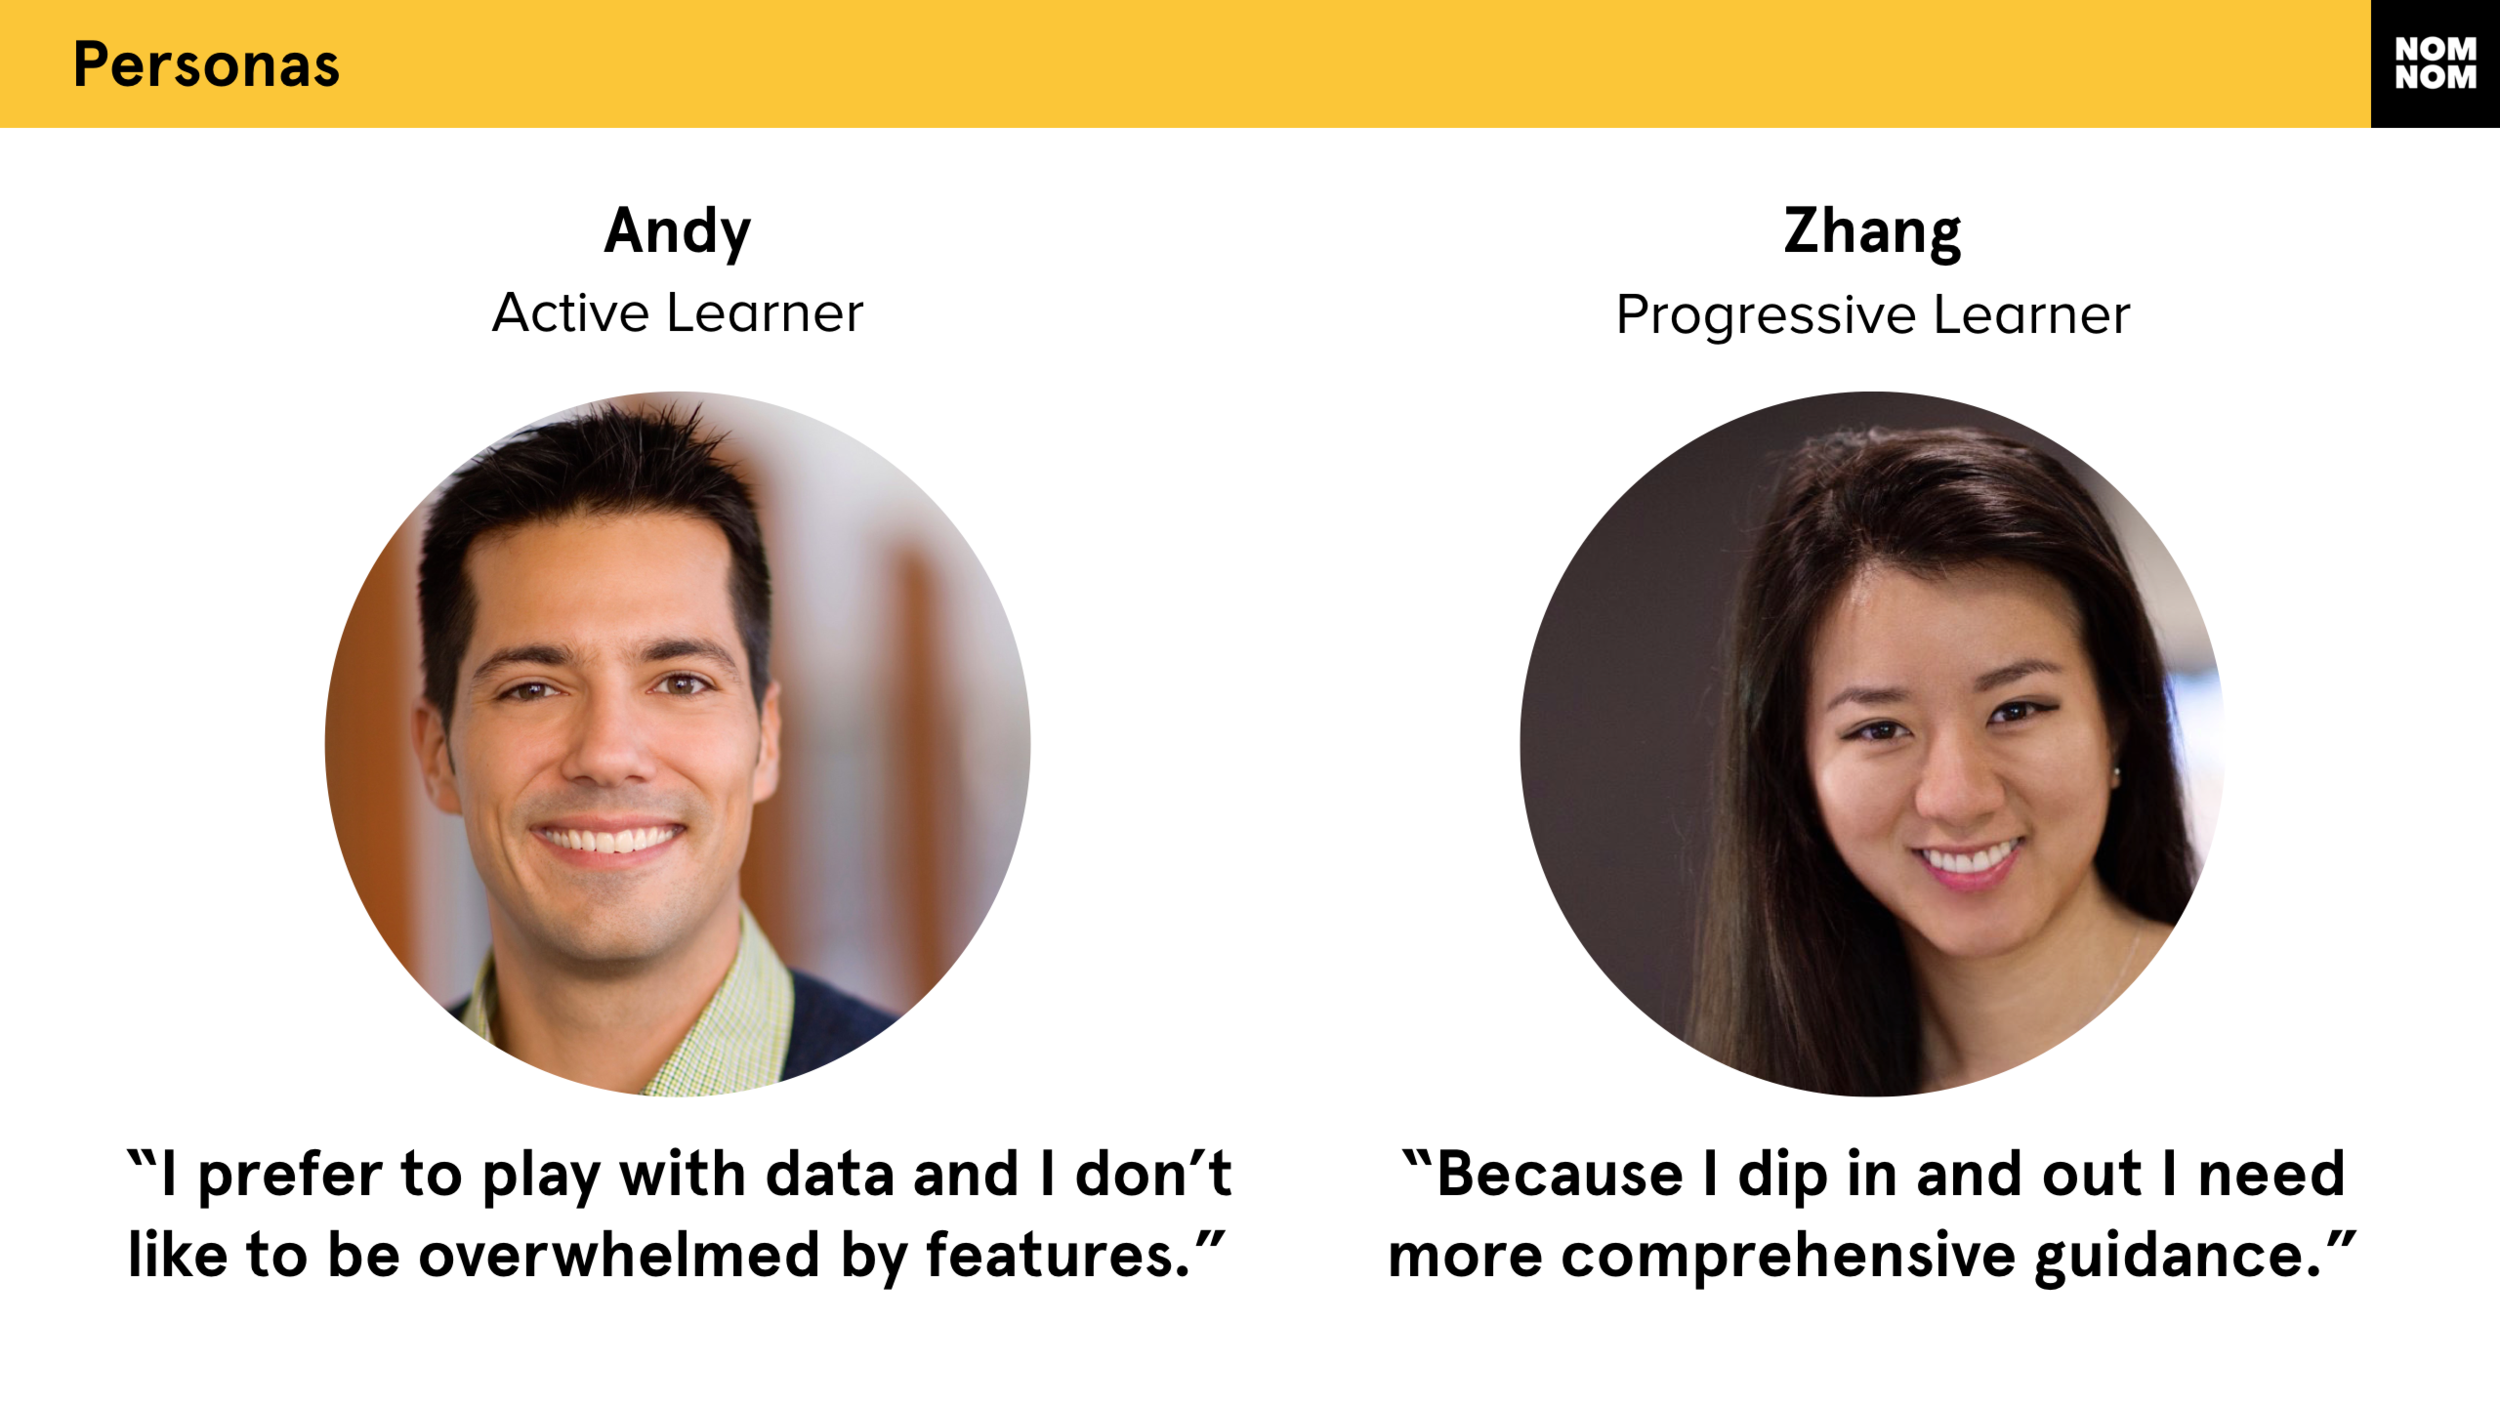 Our personas, Andy and Zhang